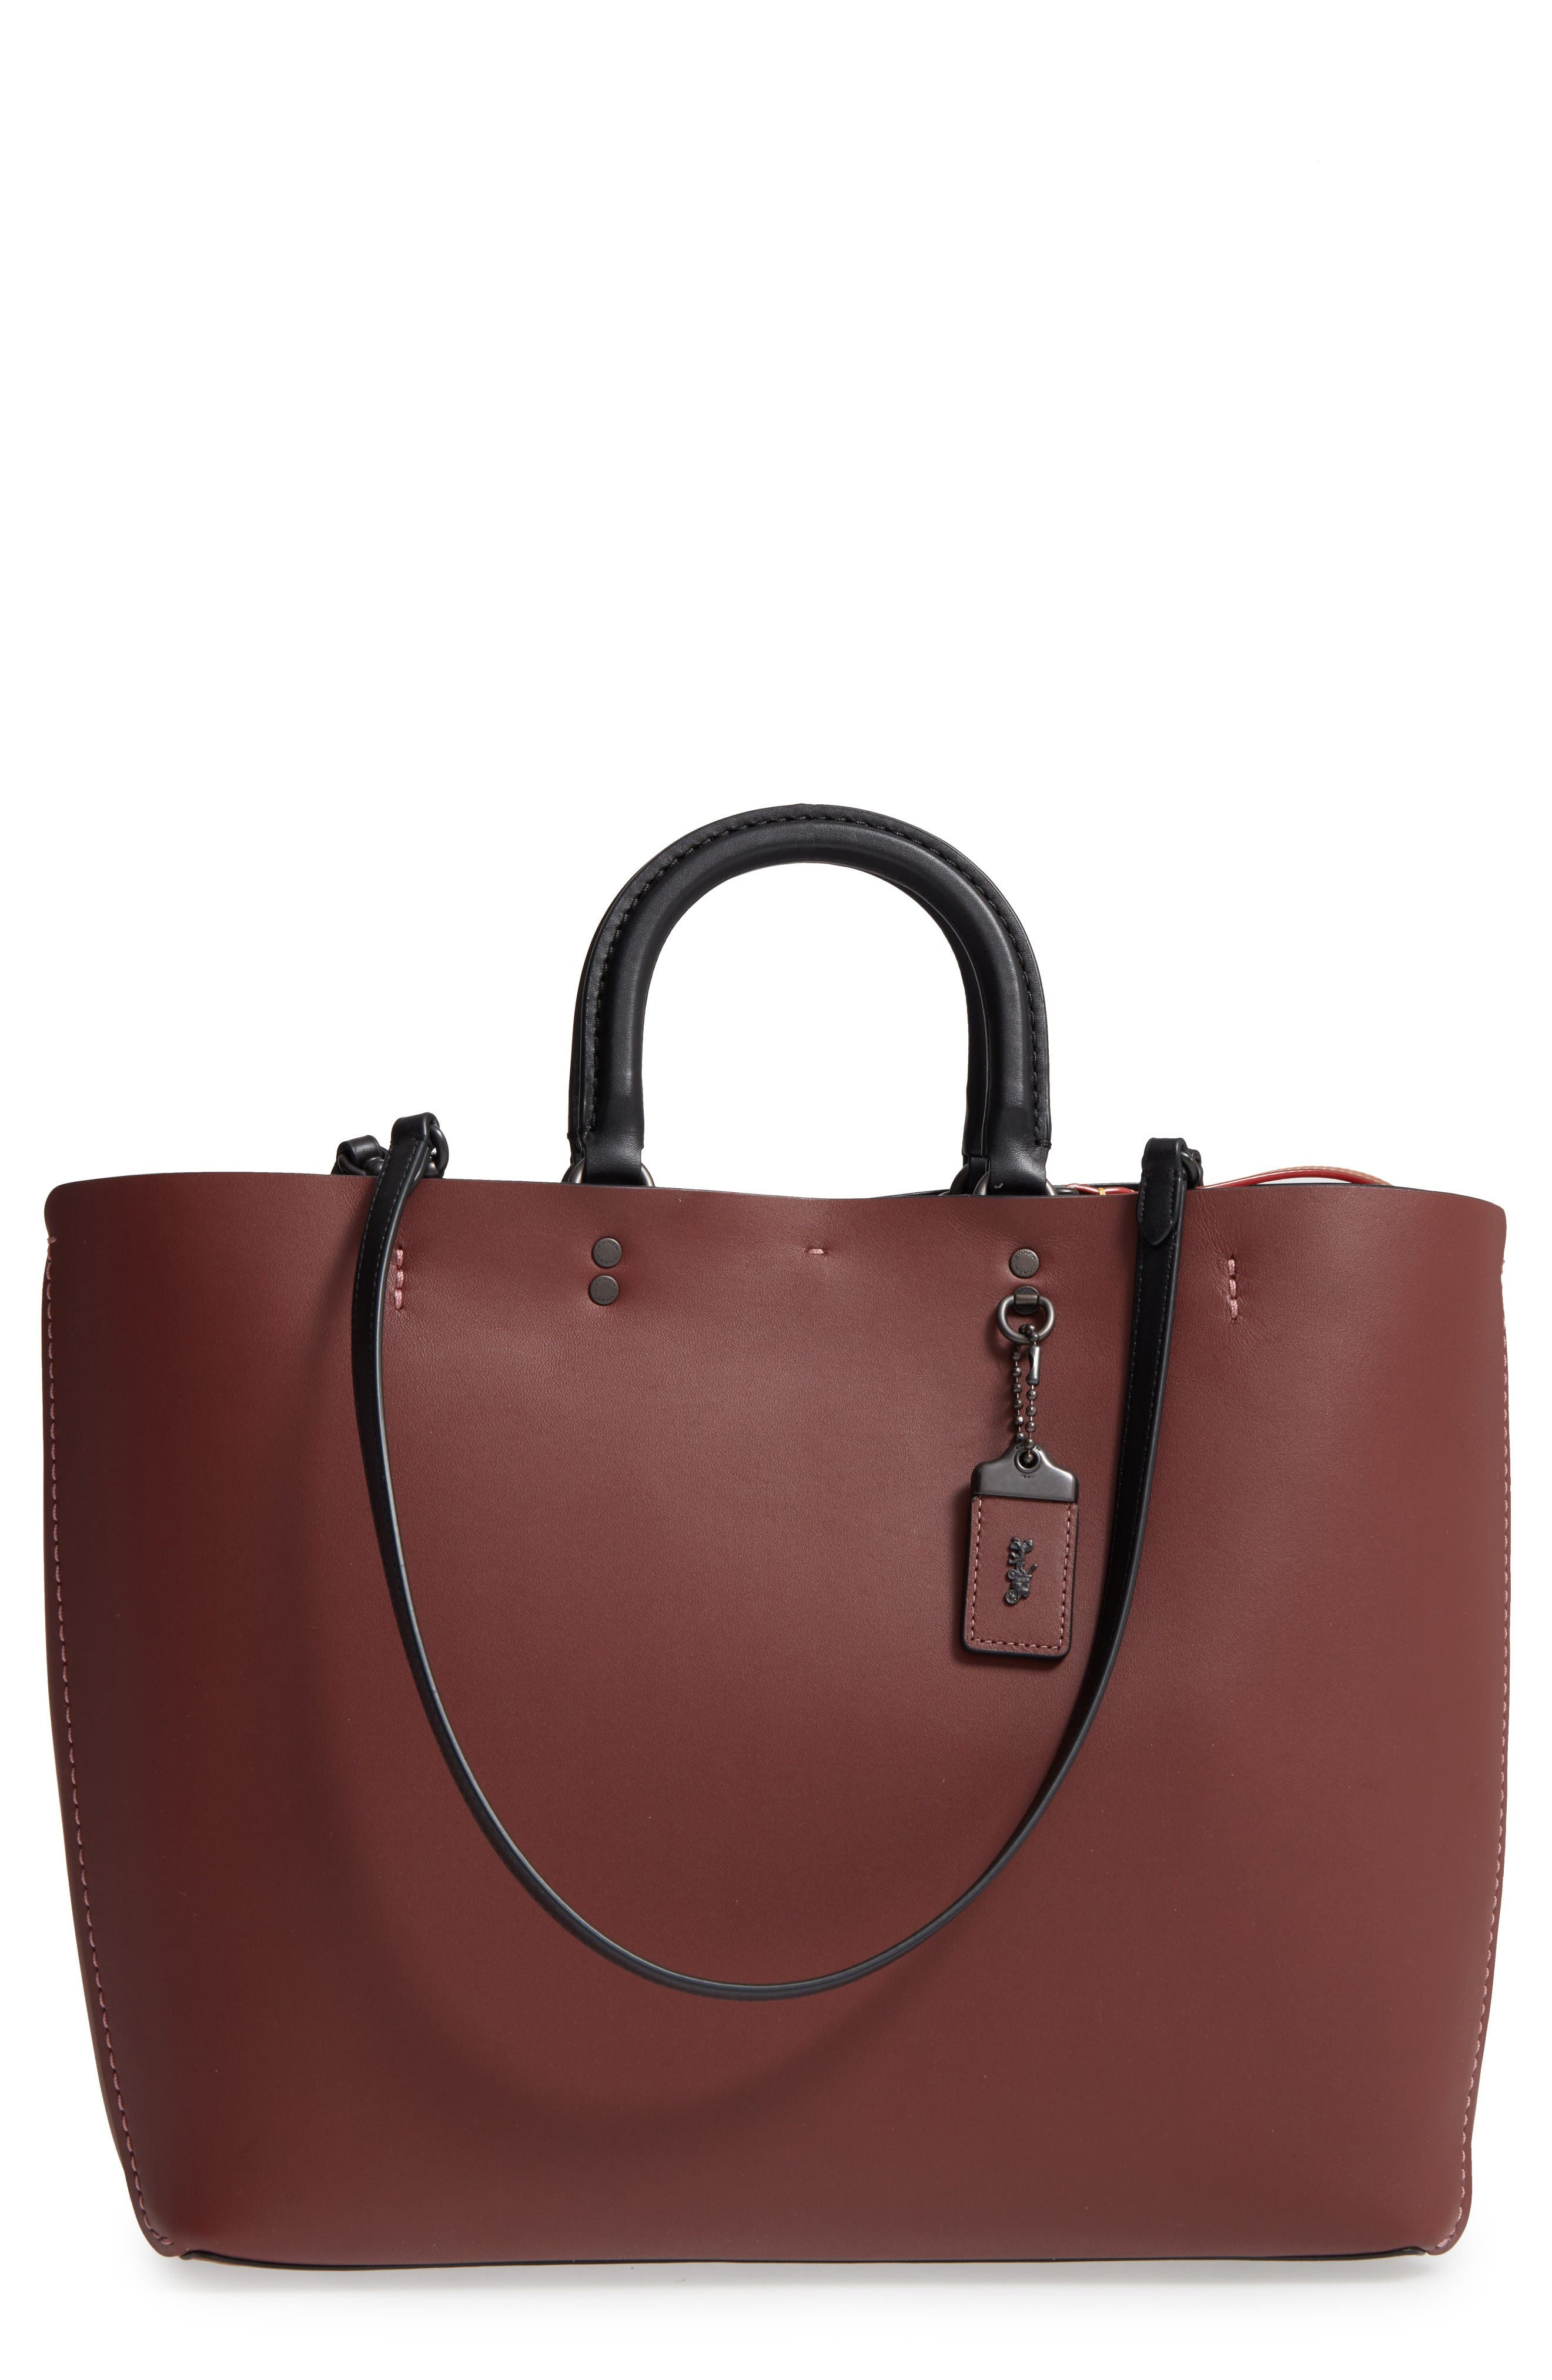 Main Image - COACH 1941 Rogue Leather Tote